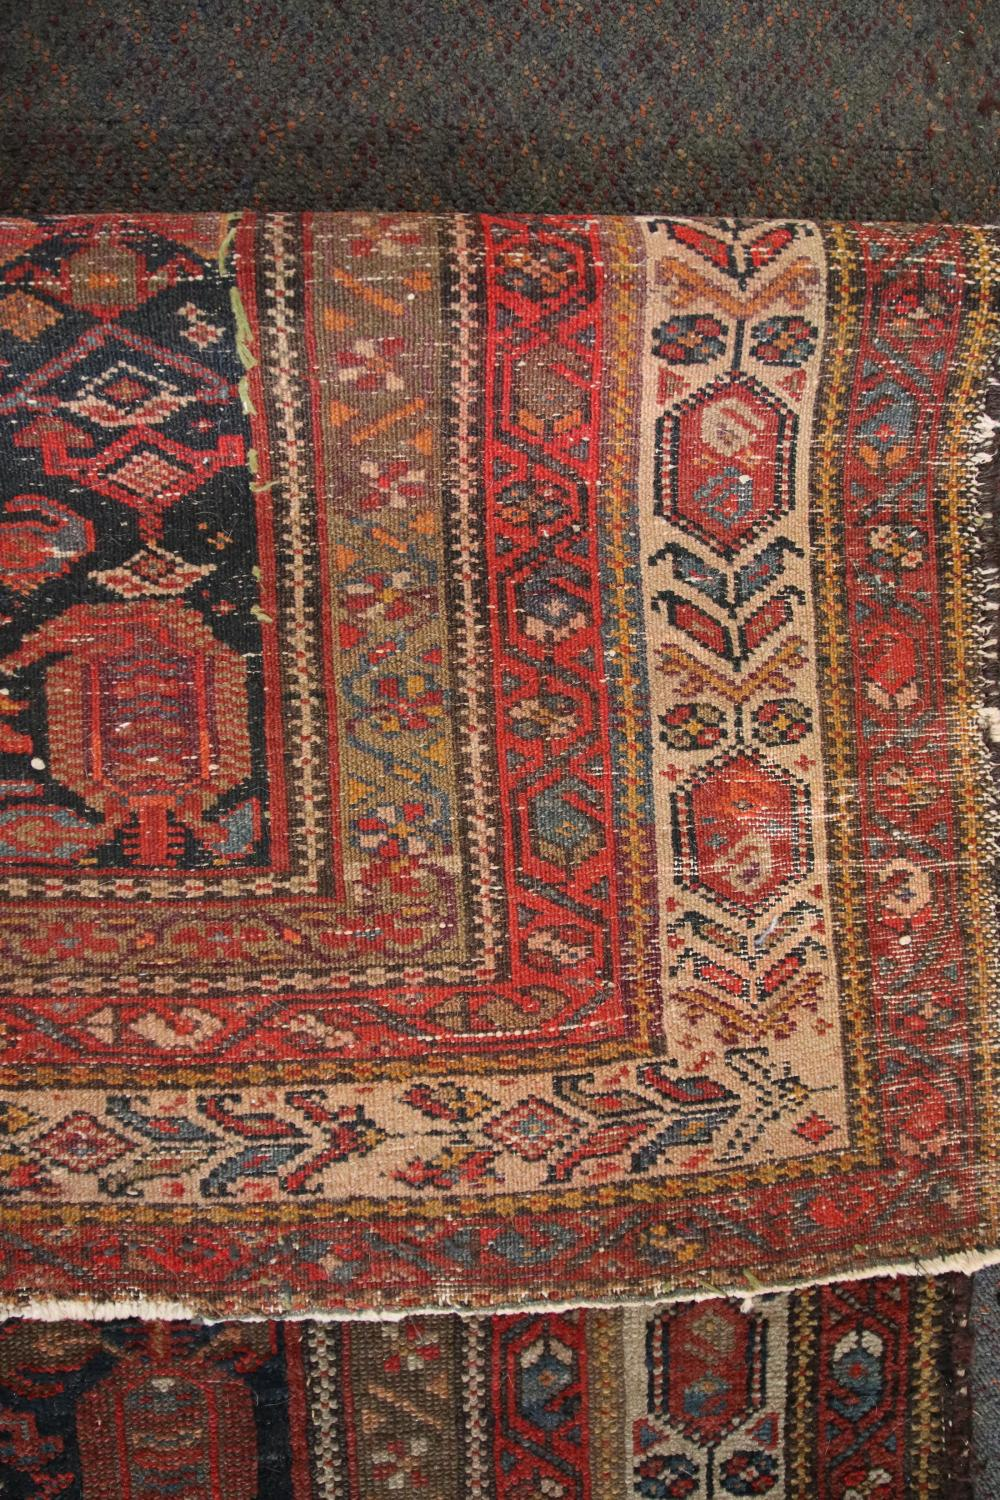 ANTIQUE PERSIAN HAND KNOTTED WOOL FLOOR KILIM, RED AND BLUE MEDALLION AND BORDER PATTERN, MEASURES 125CM X 185CM (WEAR AND FRAYED EDGES)